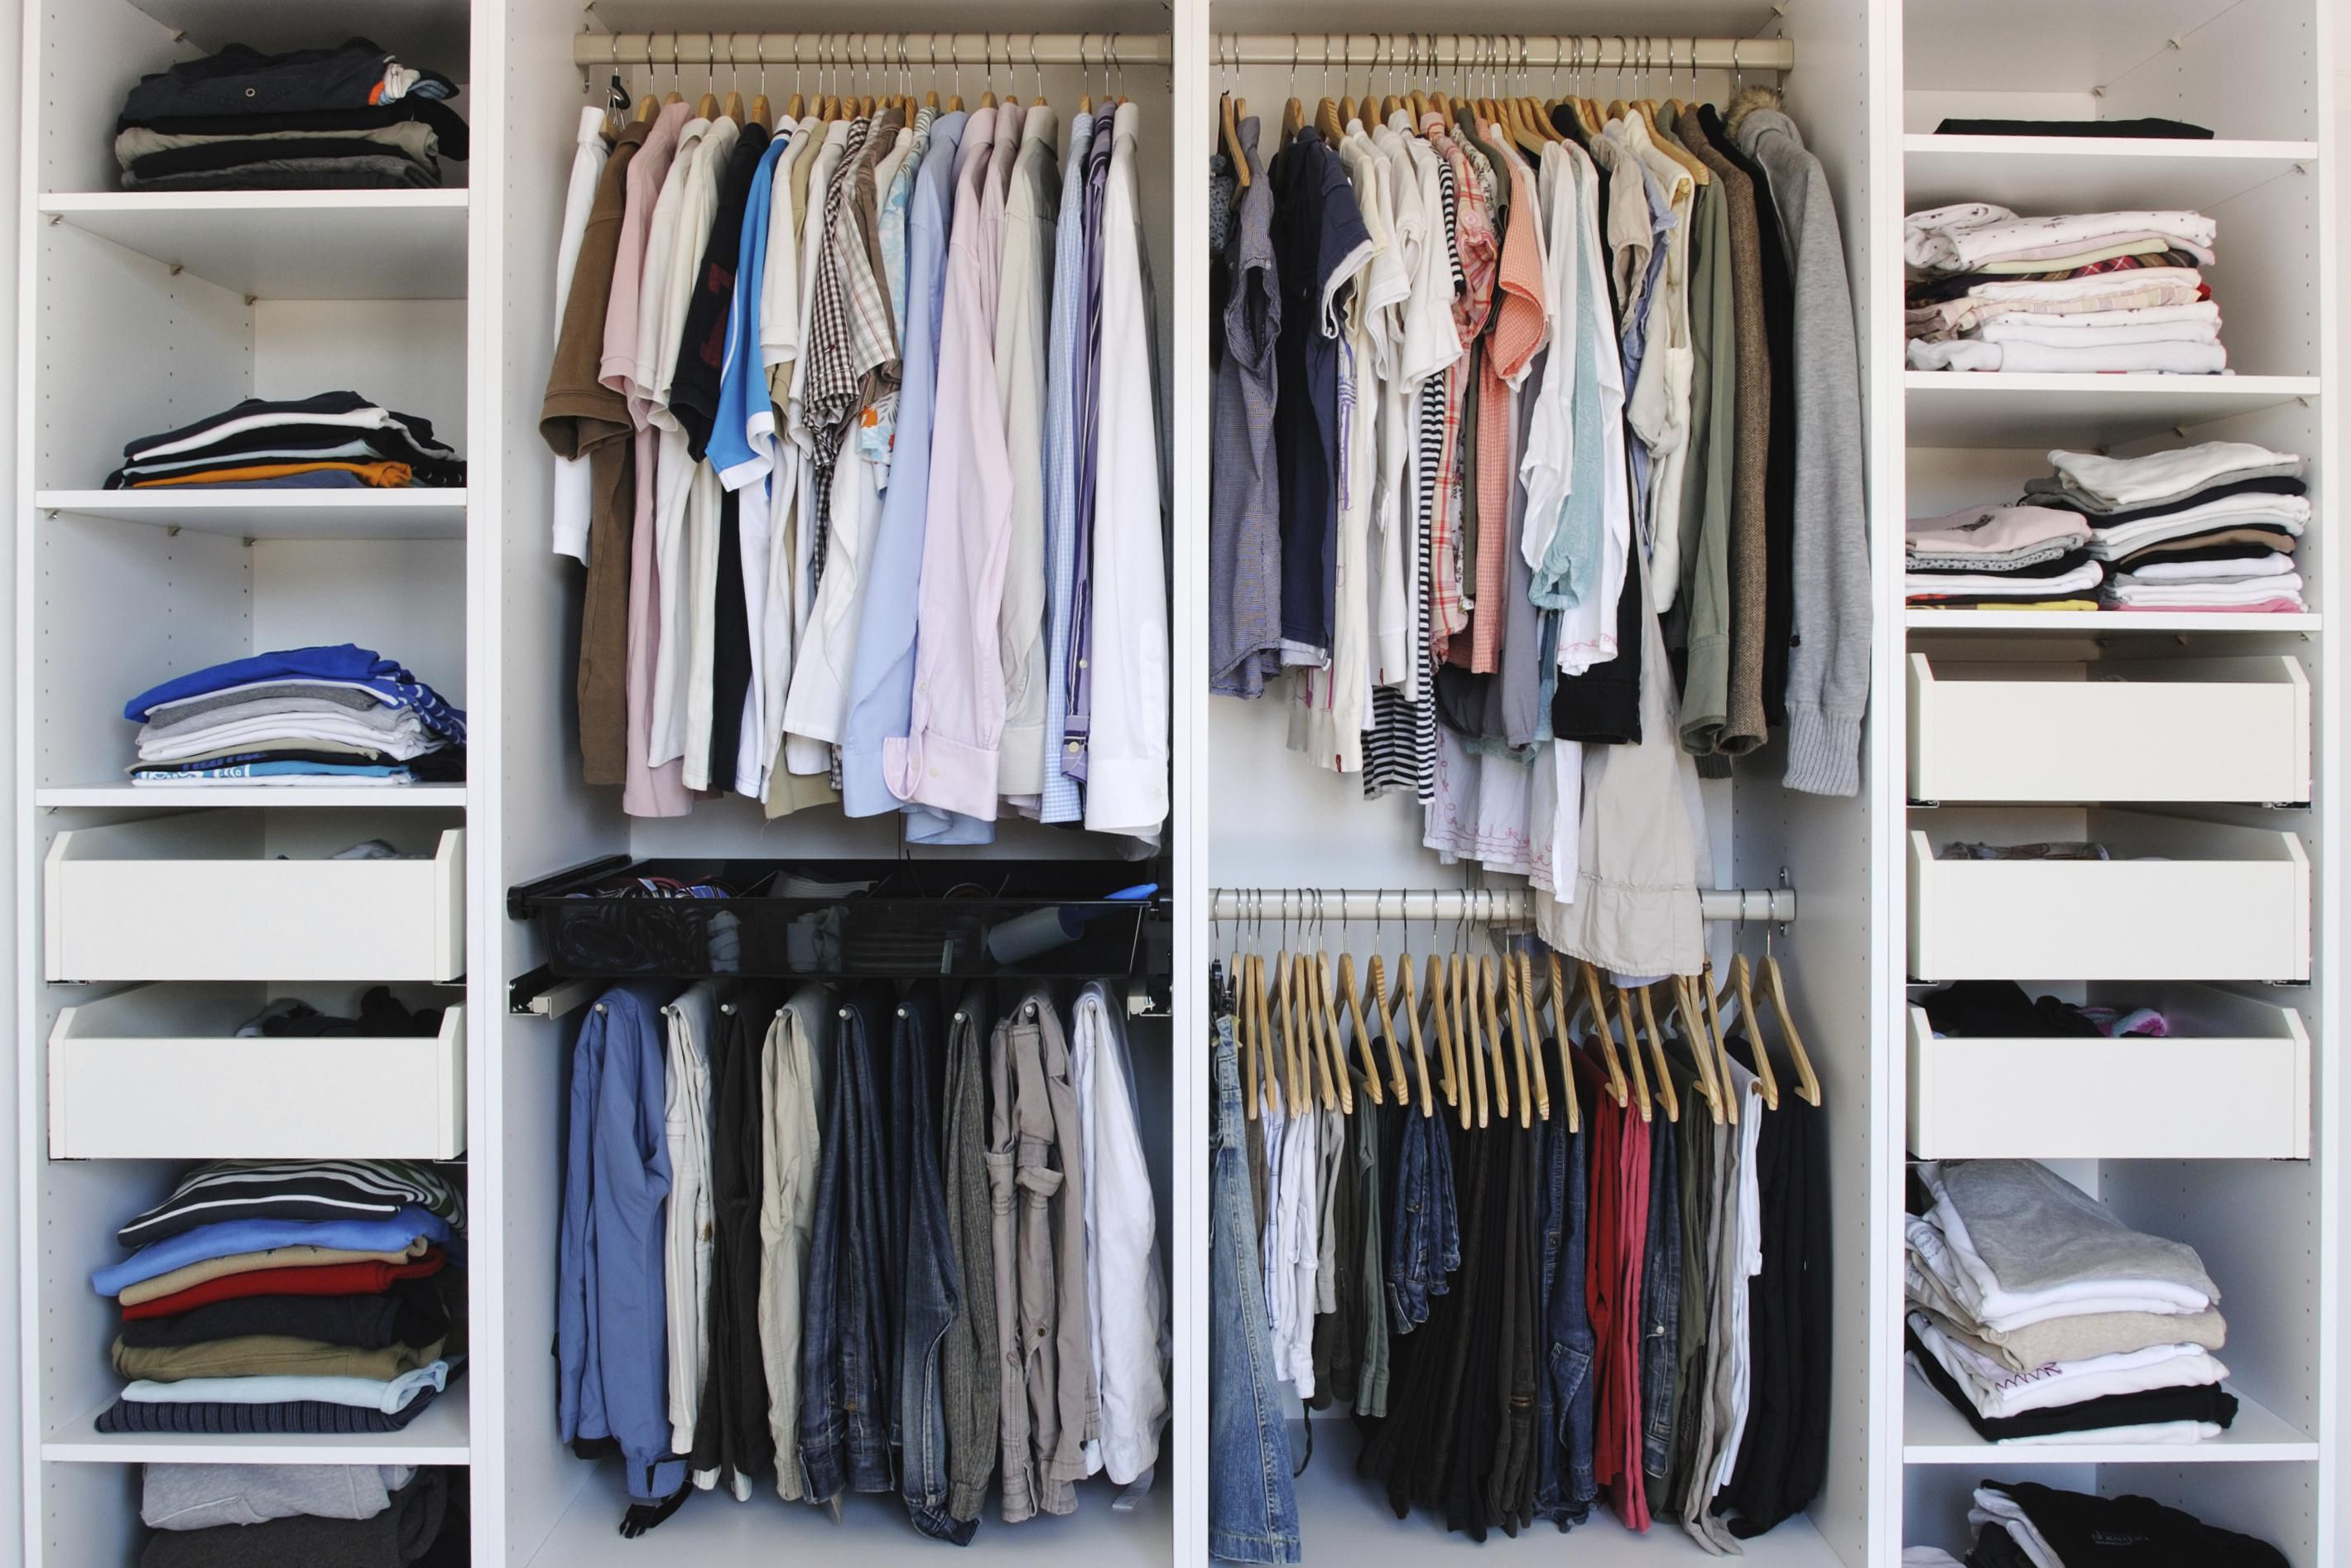 10 best closet storage ideas - Storage ideas for clothes in small bedroom ...